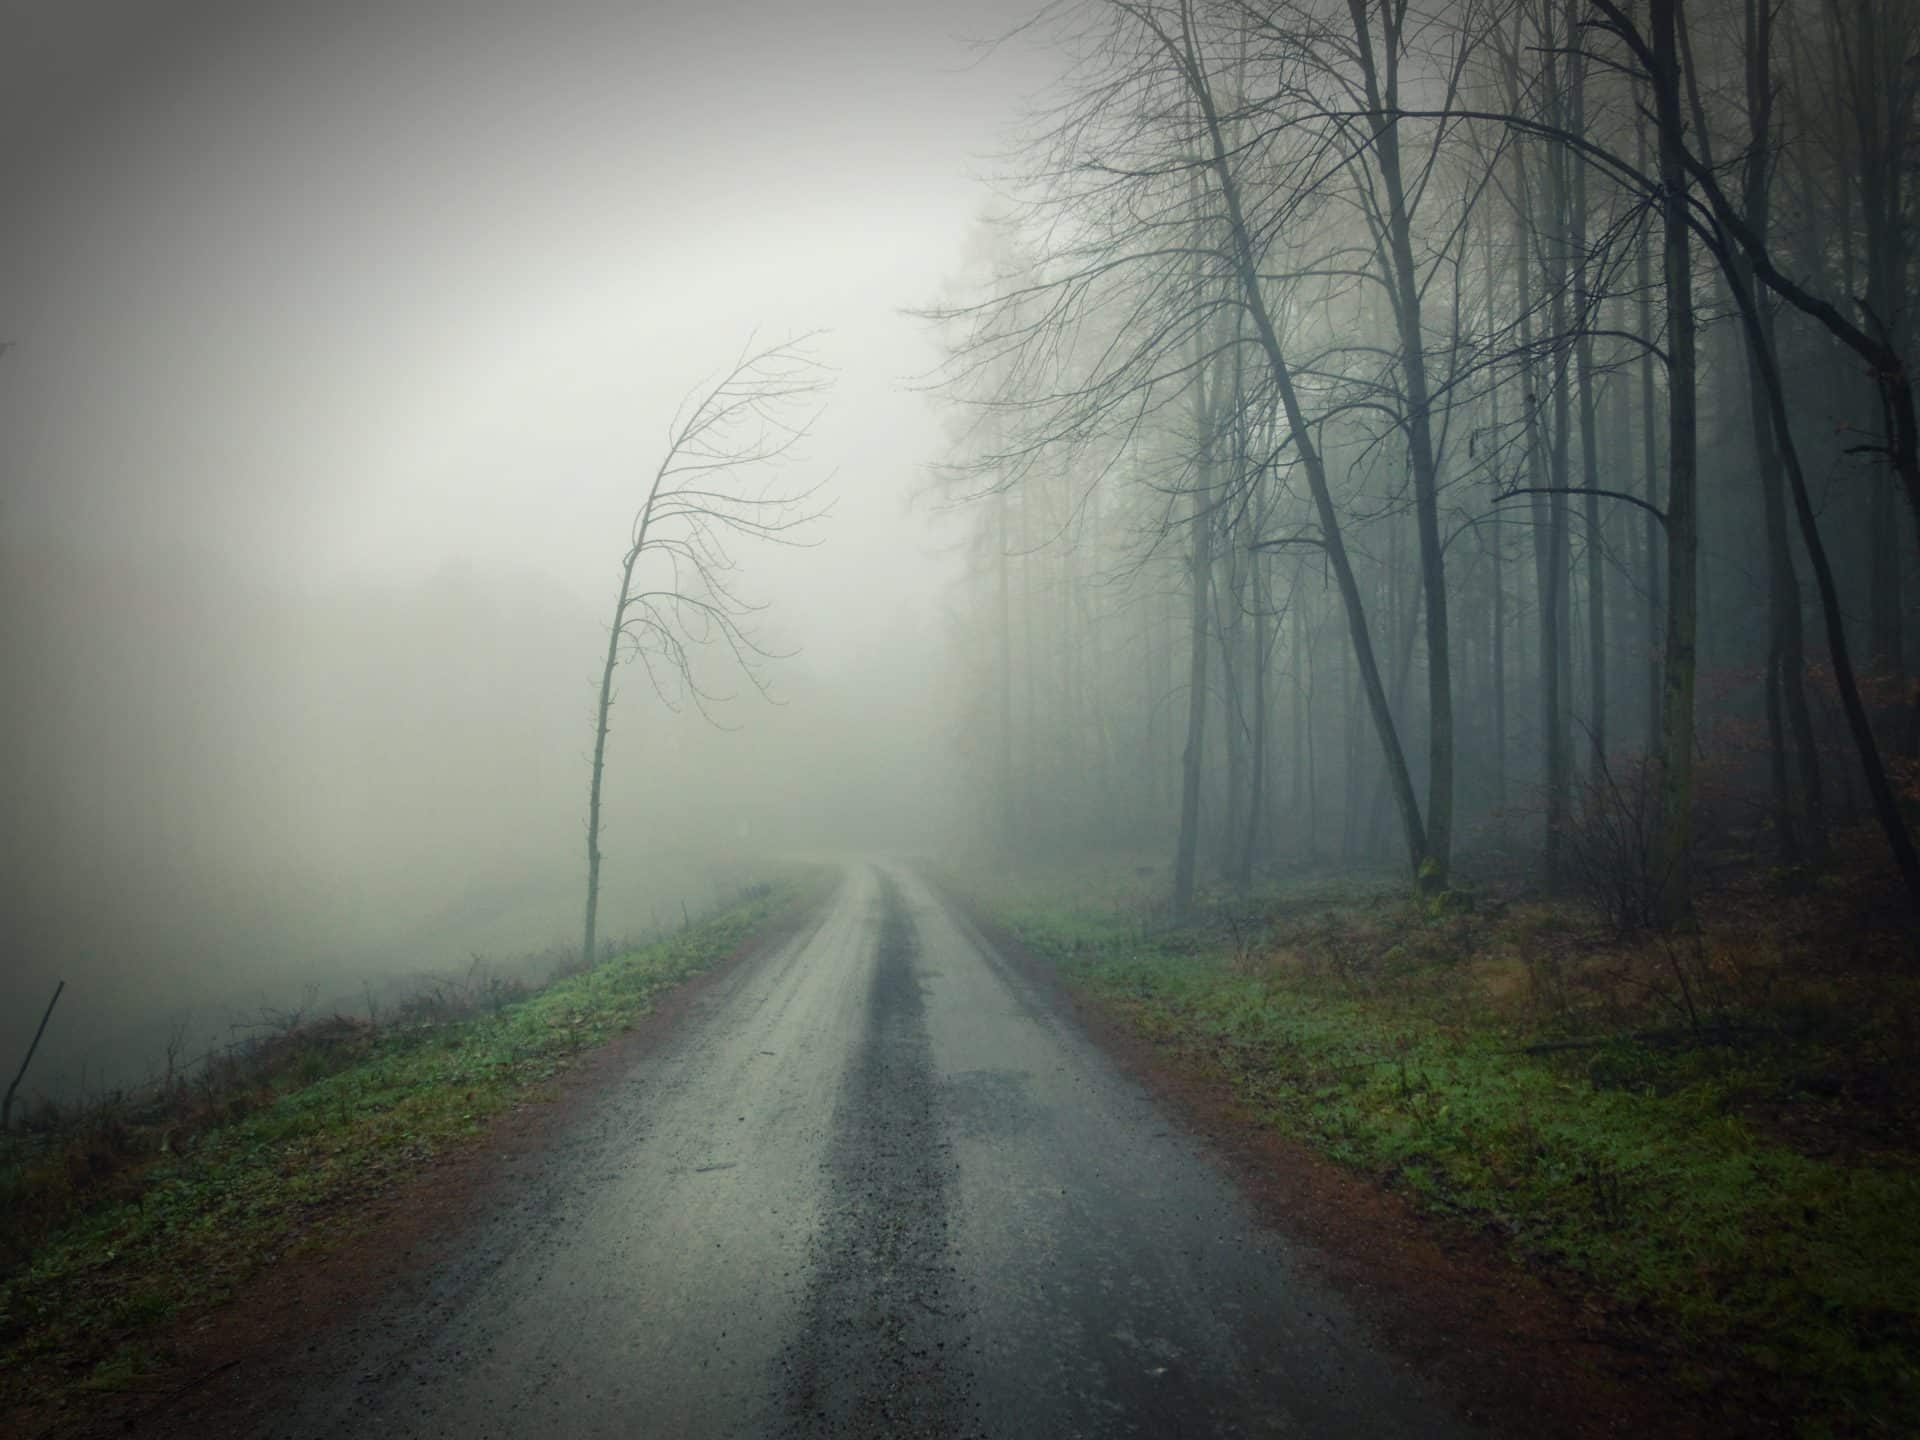 Grey road lined with trees and fog